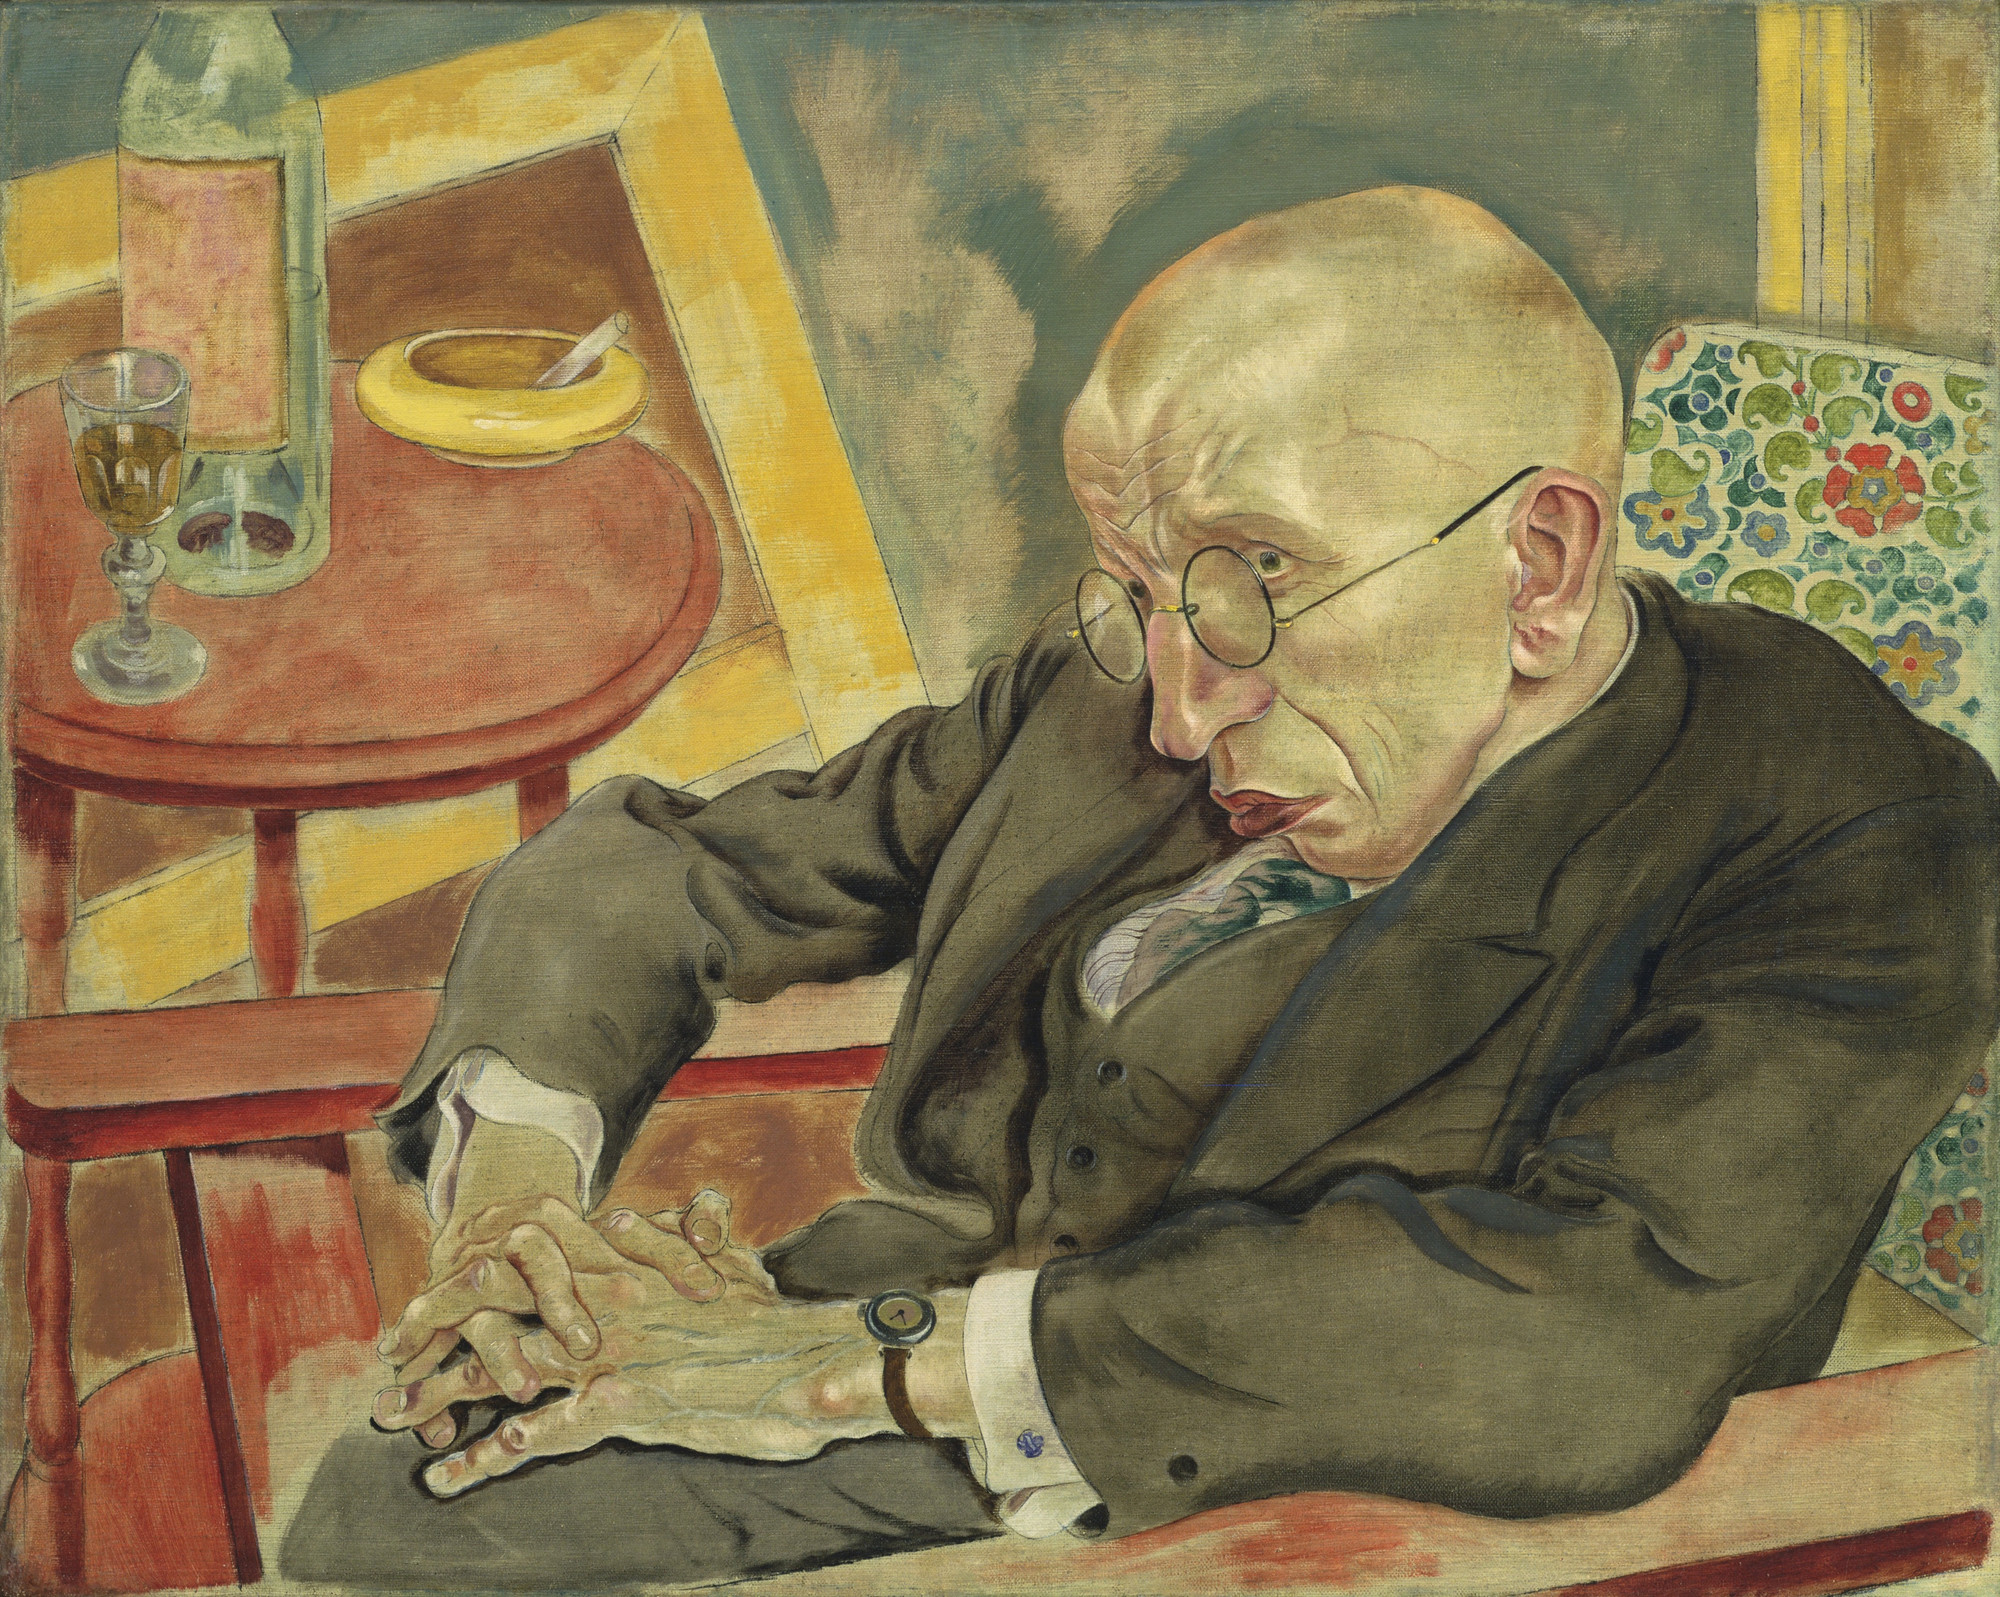 George Grosz. The Poet Max Herrmann-Neisse. 1927